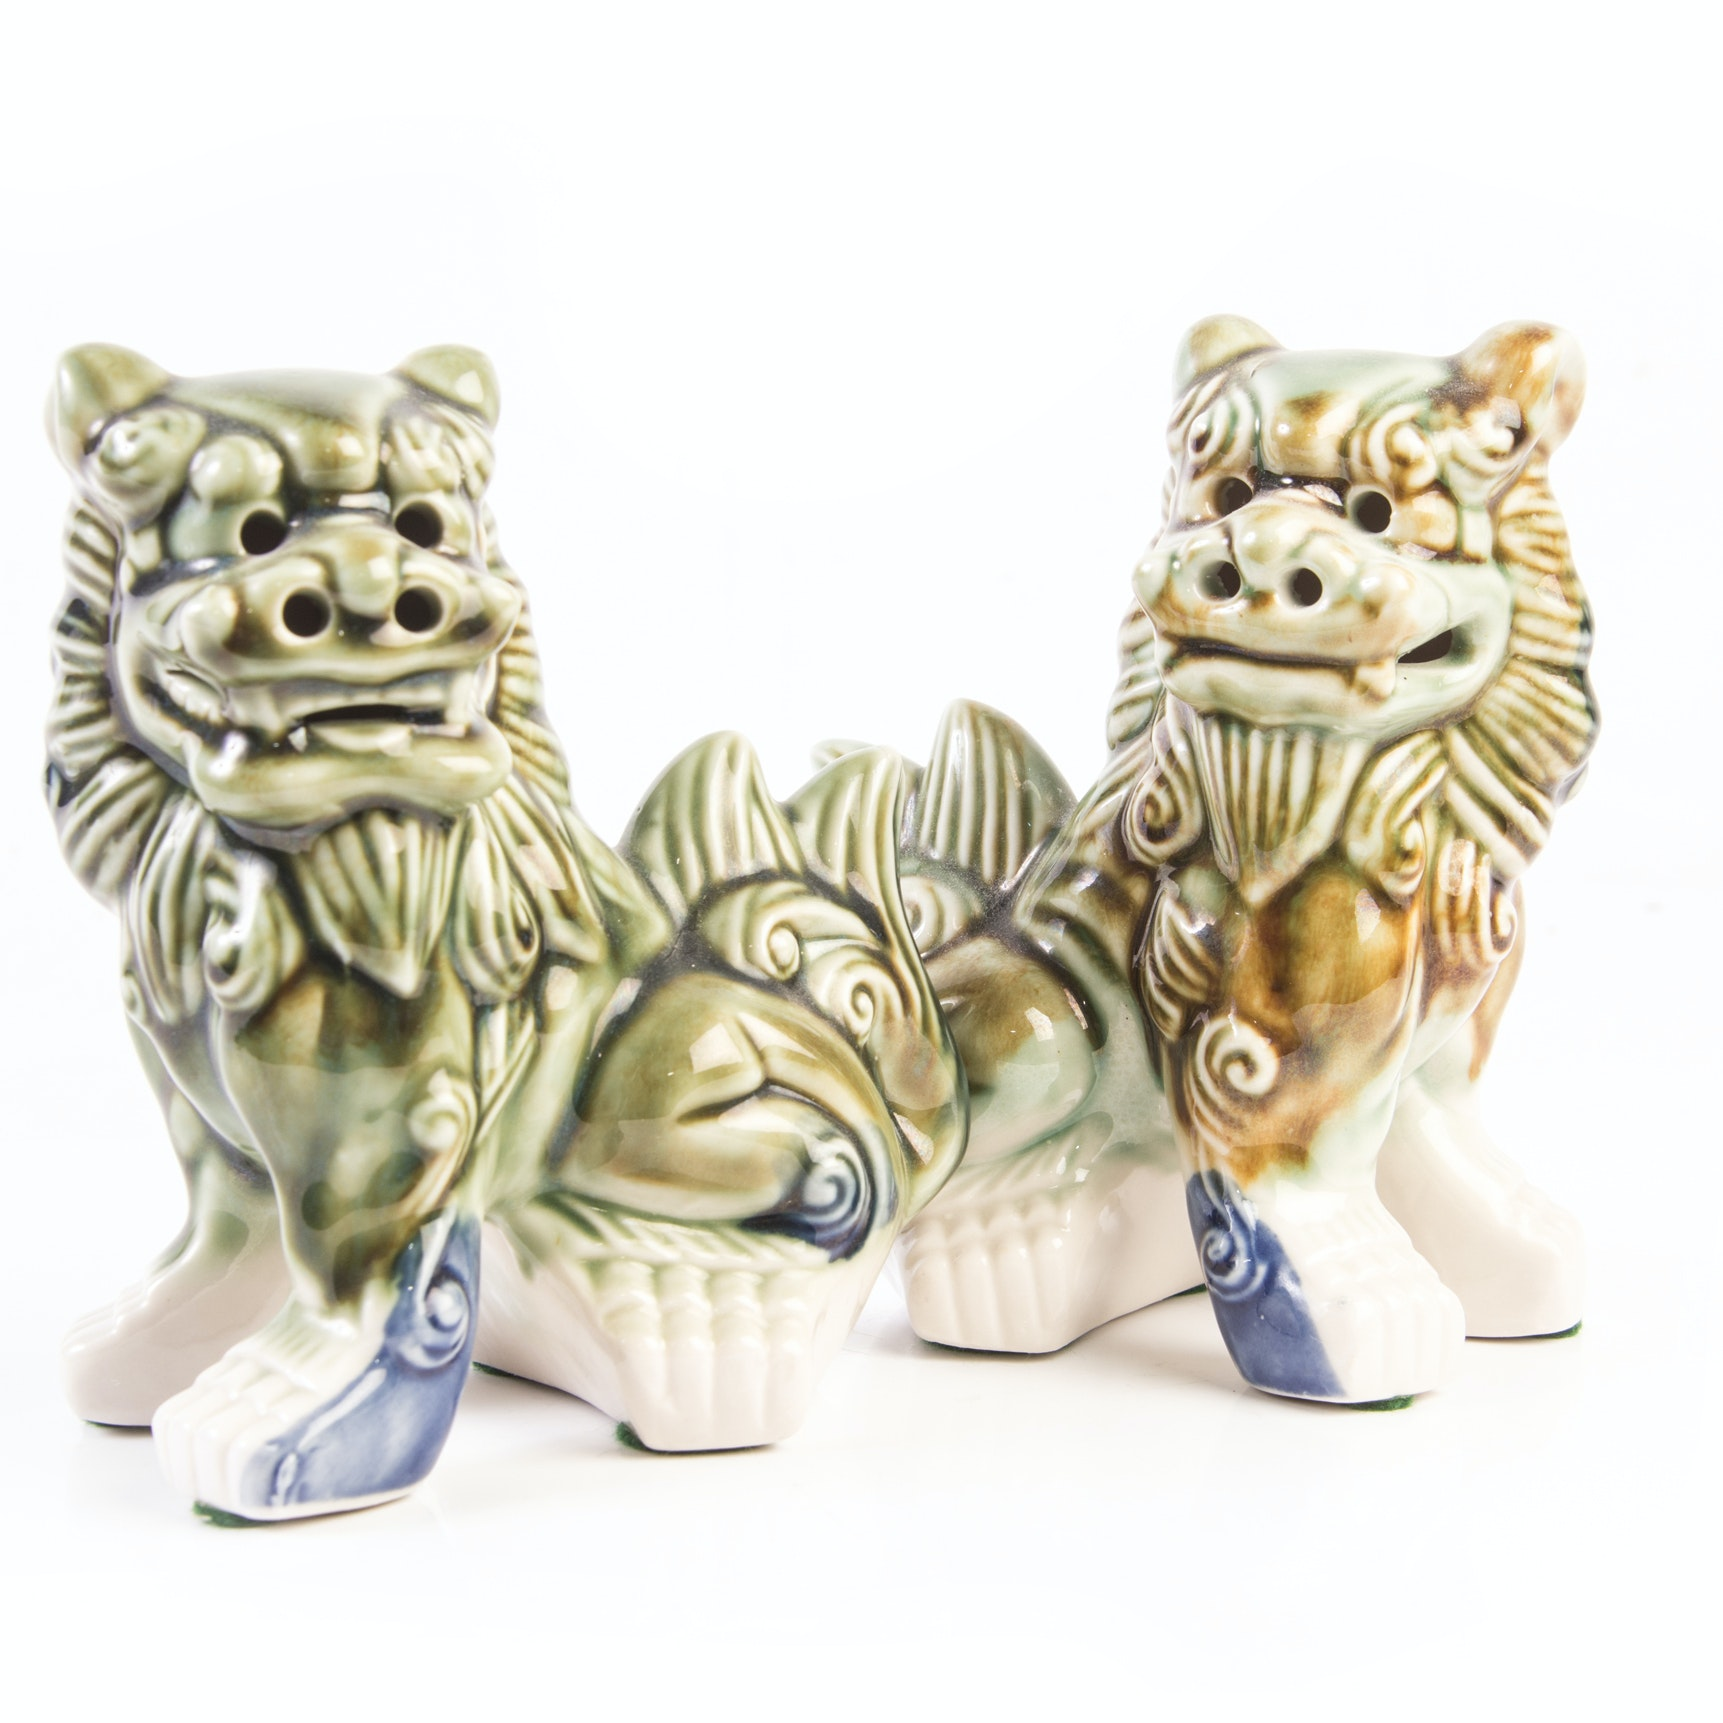 Chinese Guardian Lions Figurines